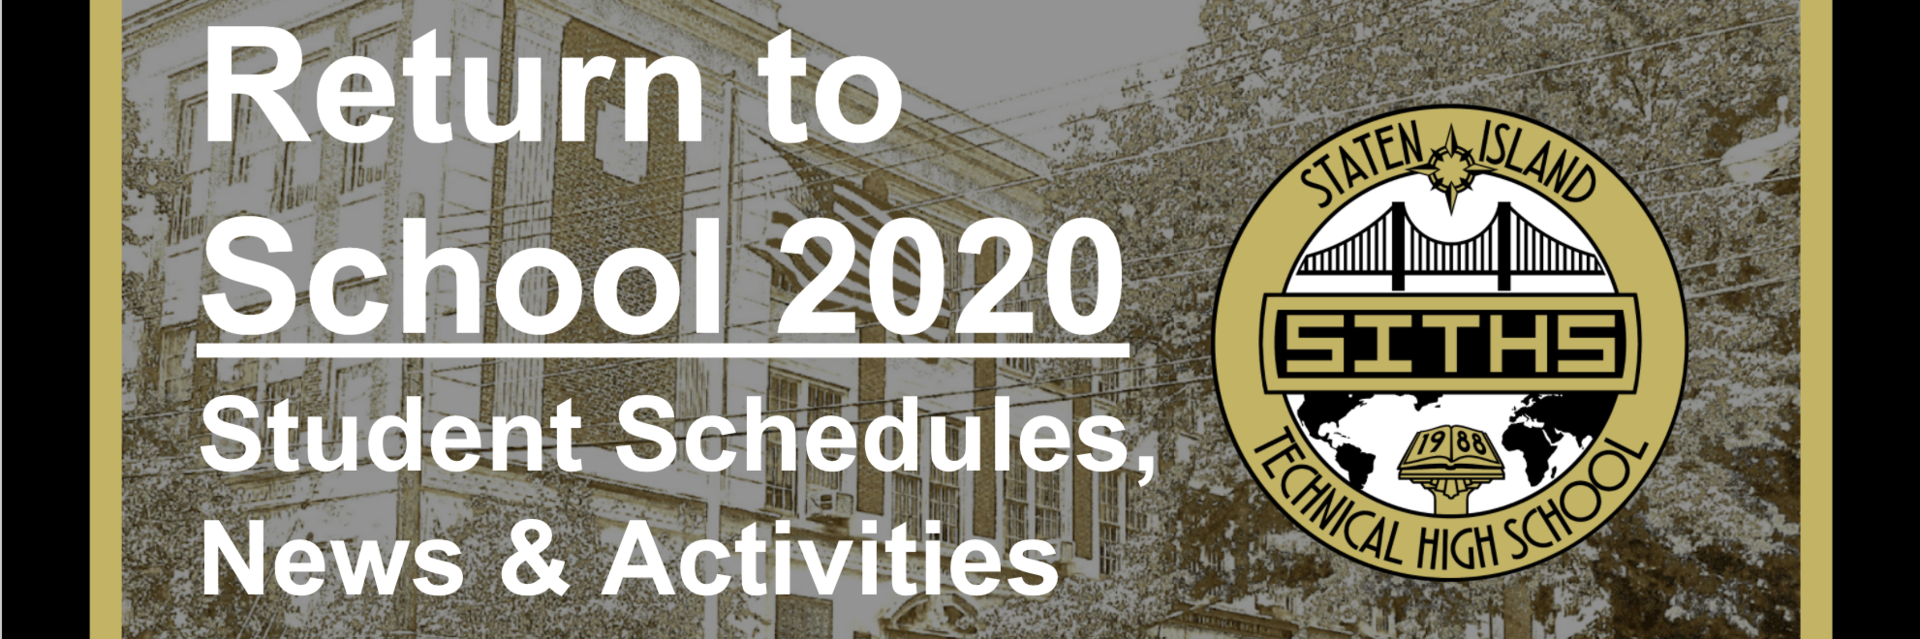 Student Schedules, News and Activities